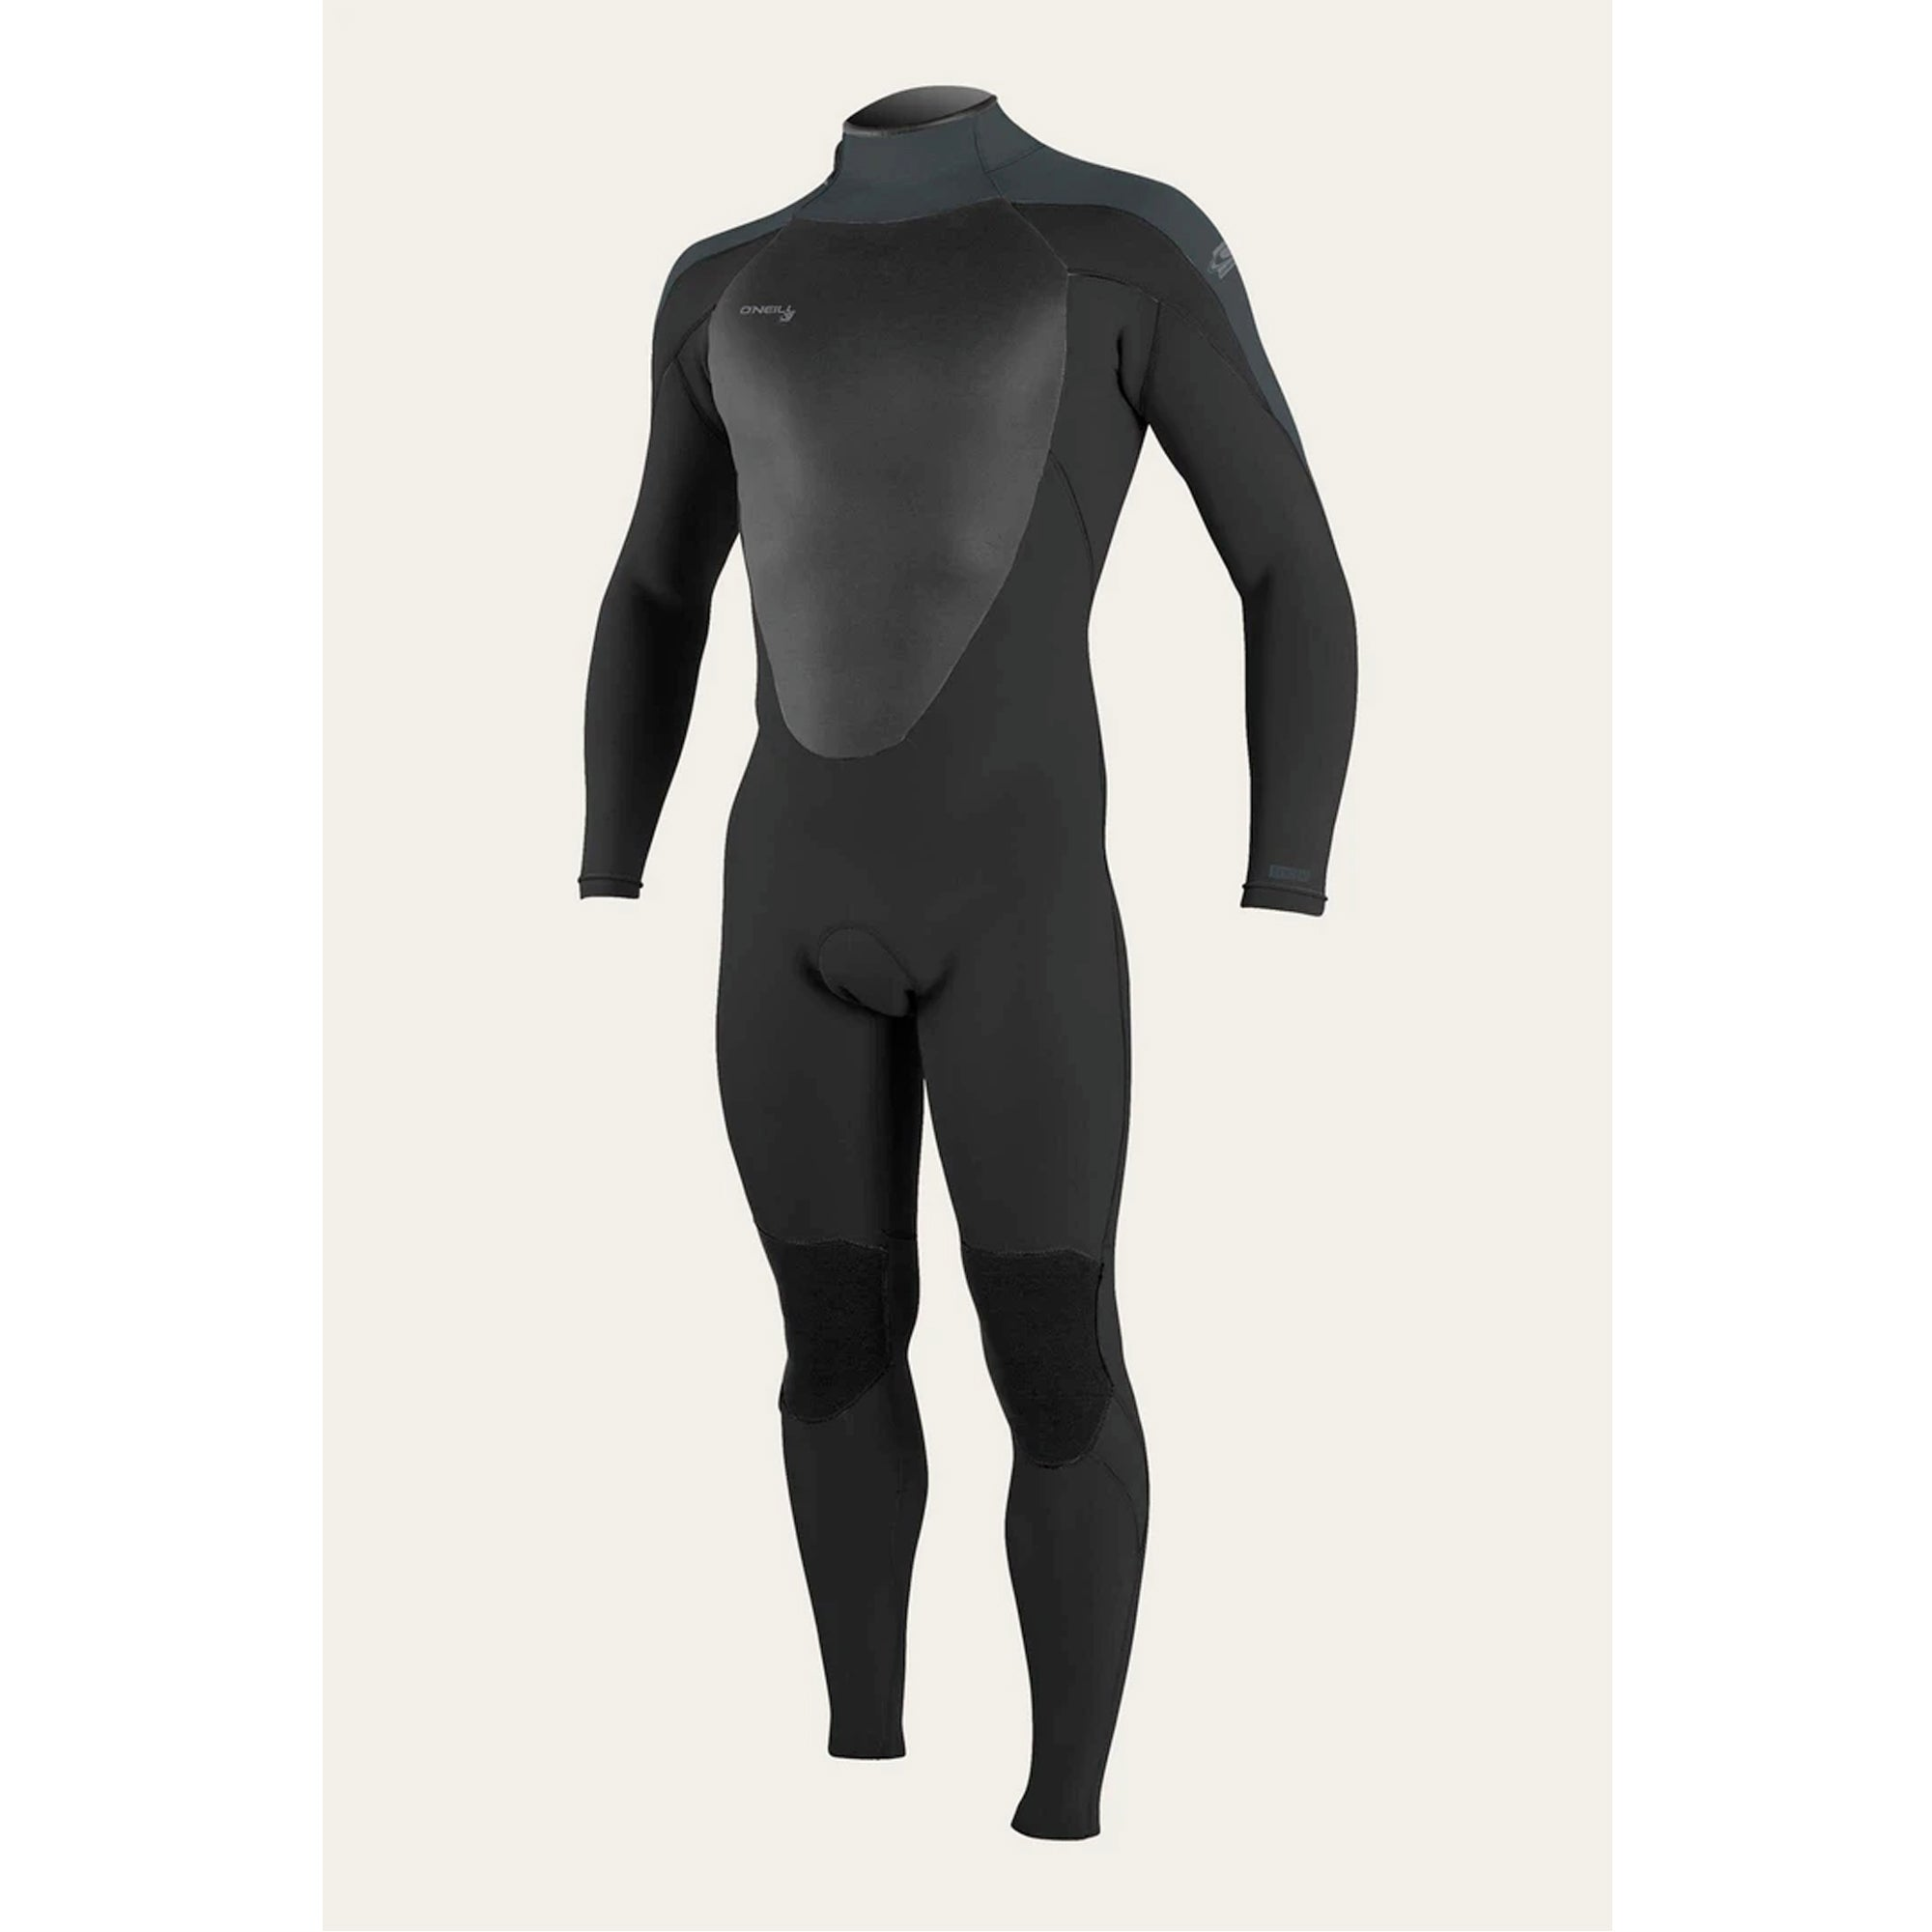 O'Neill Epic 4/3 Back-Zip Men's Fullsuit Wetsuit